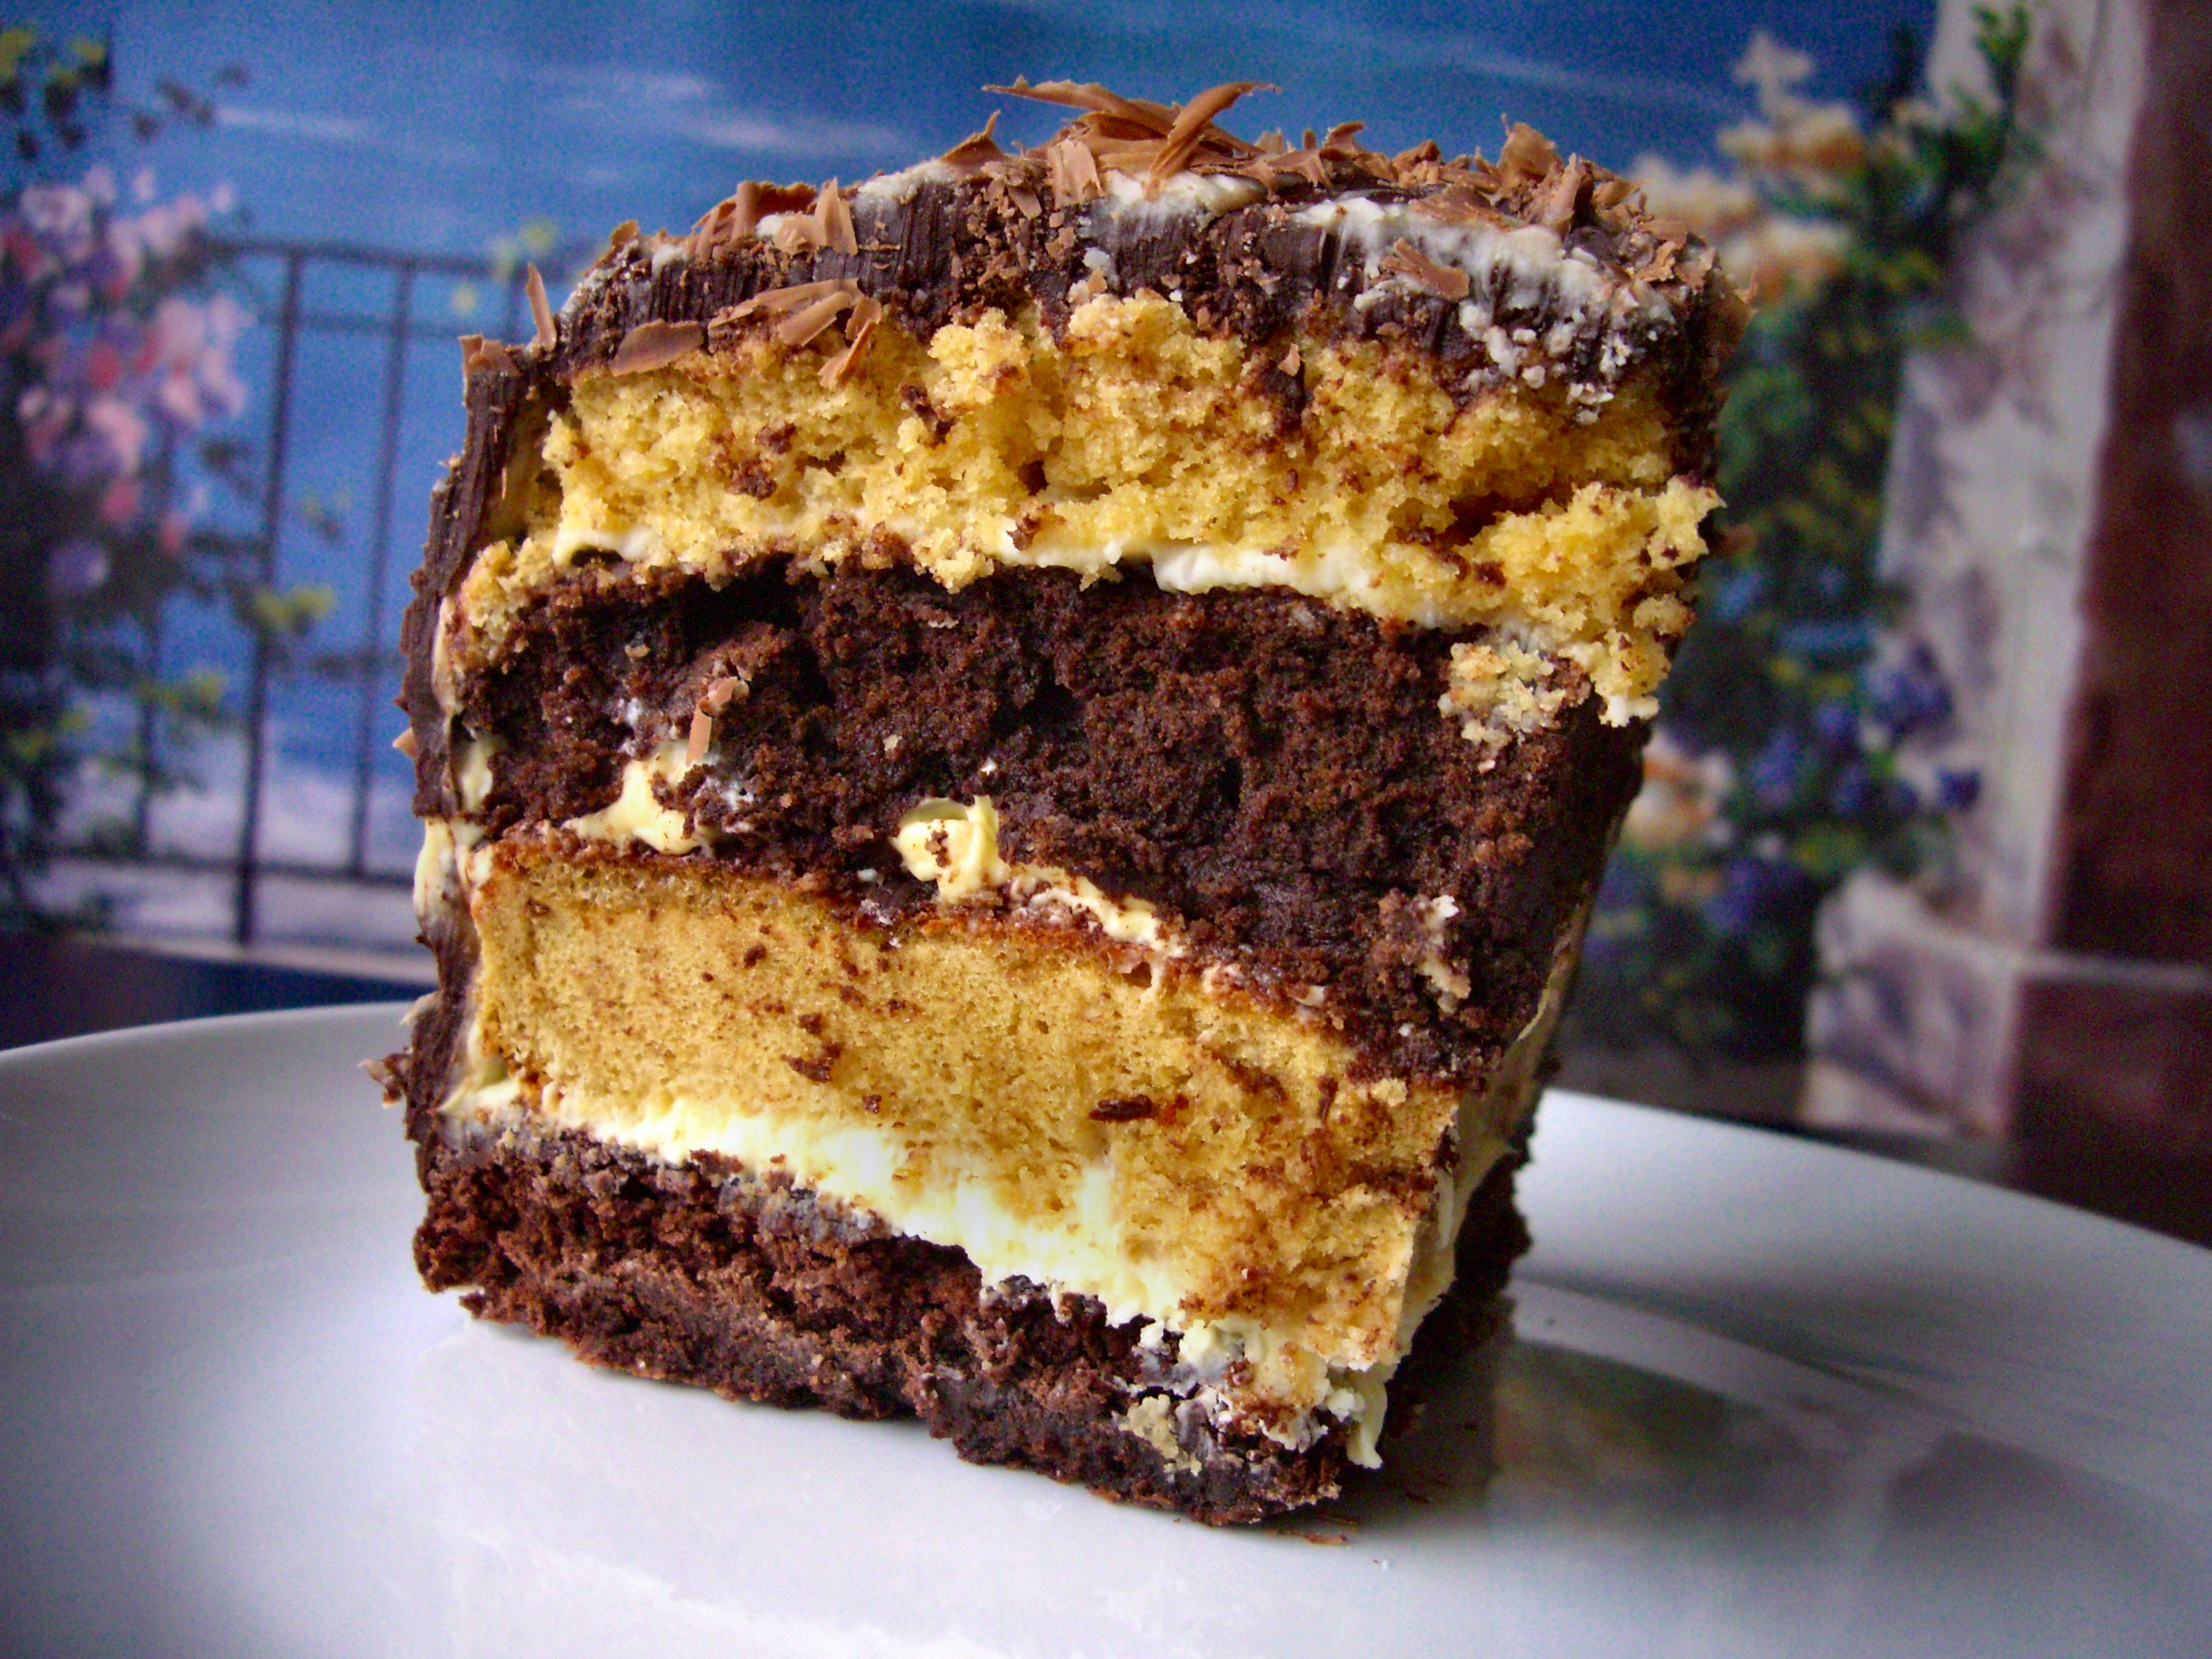 Tuxedo Layer Cake (Brownie, Chocolates, and Vanilla)